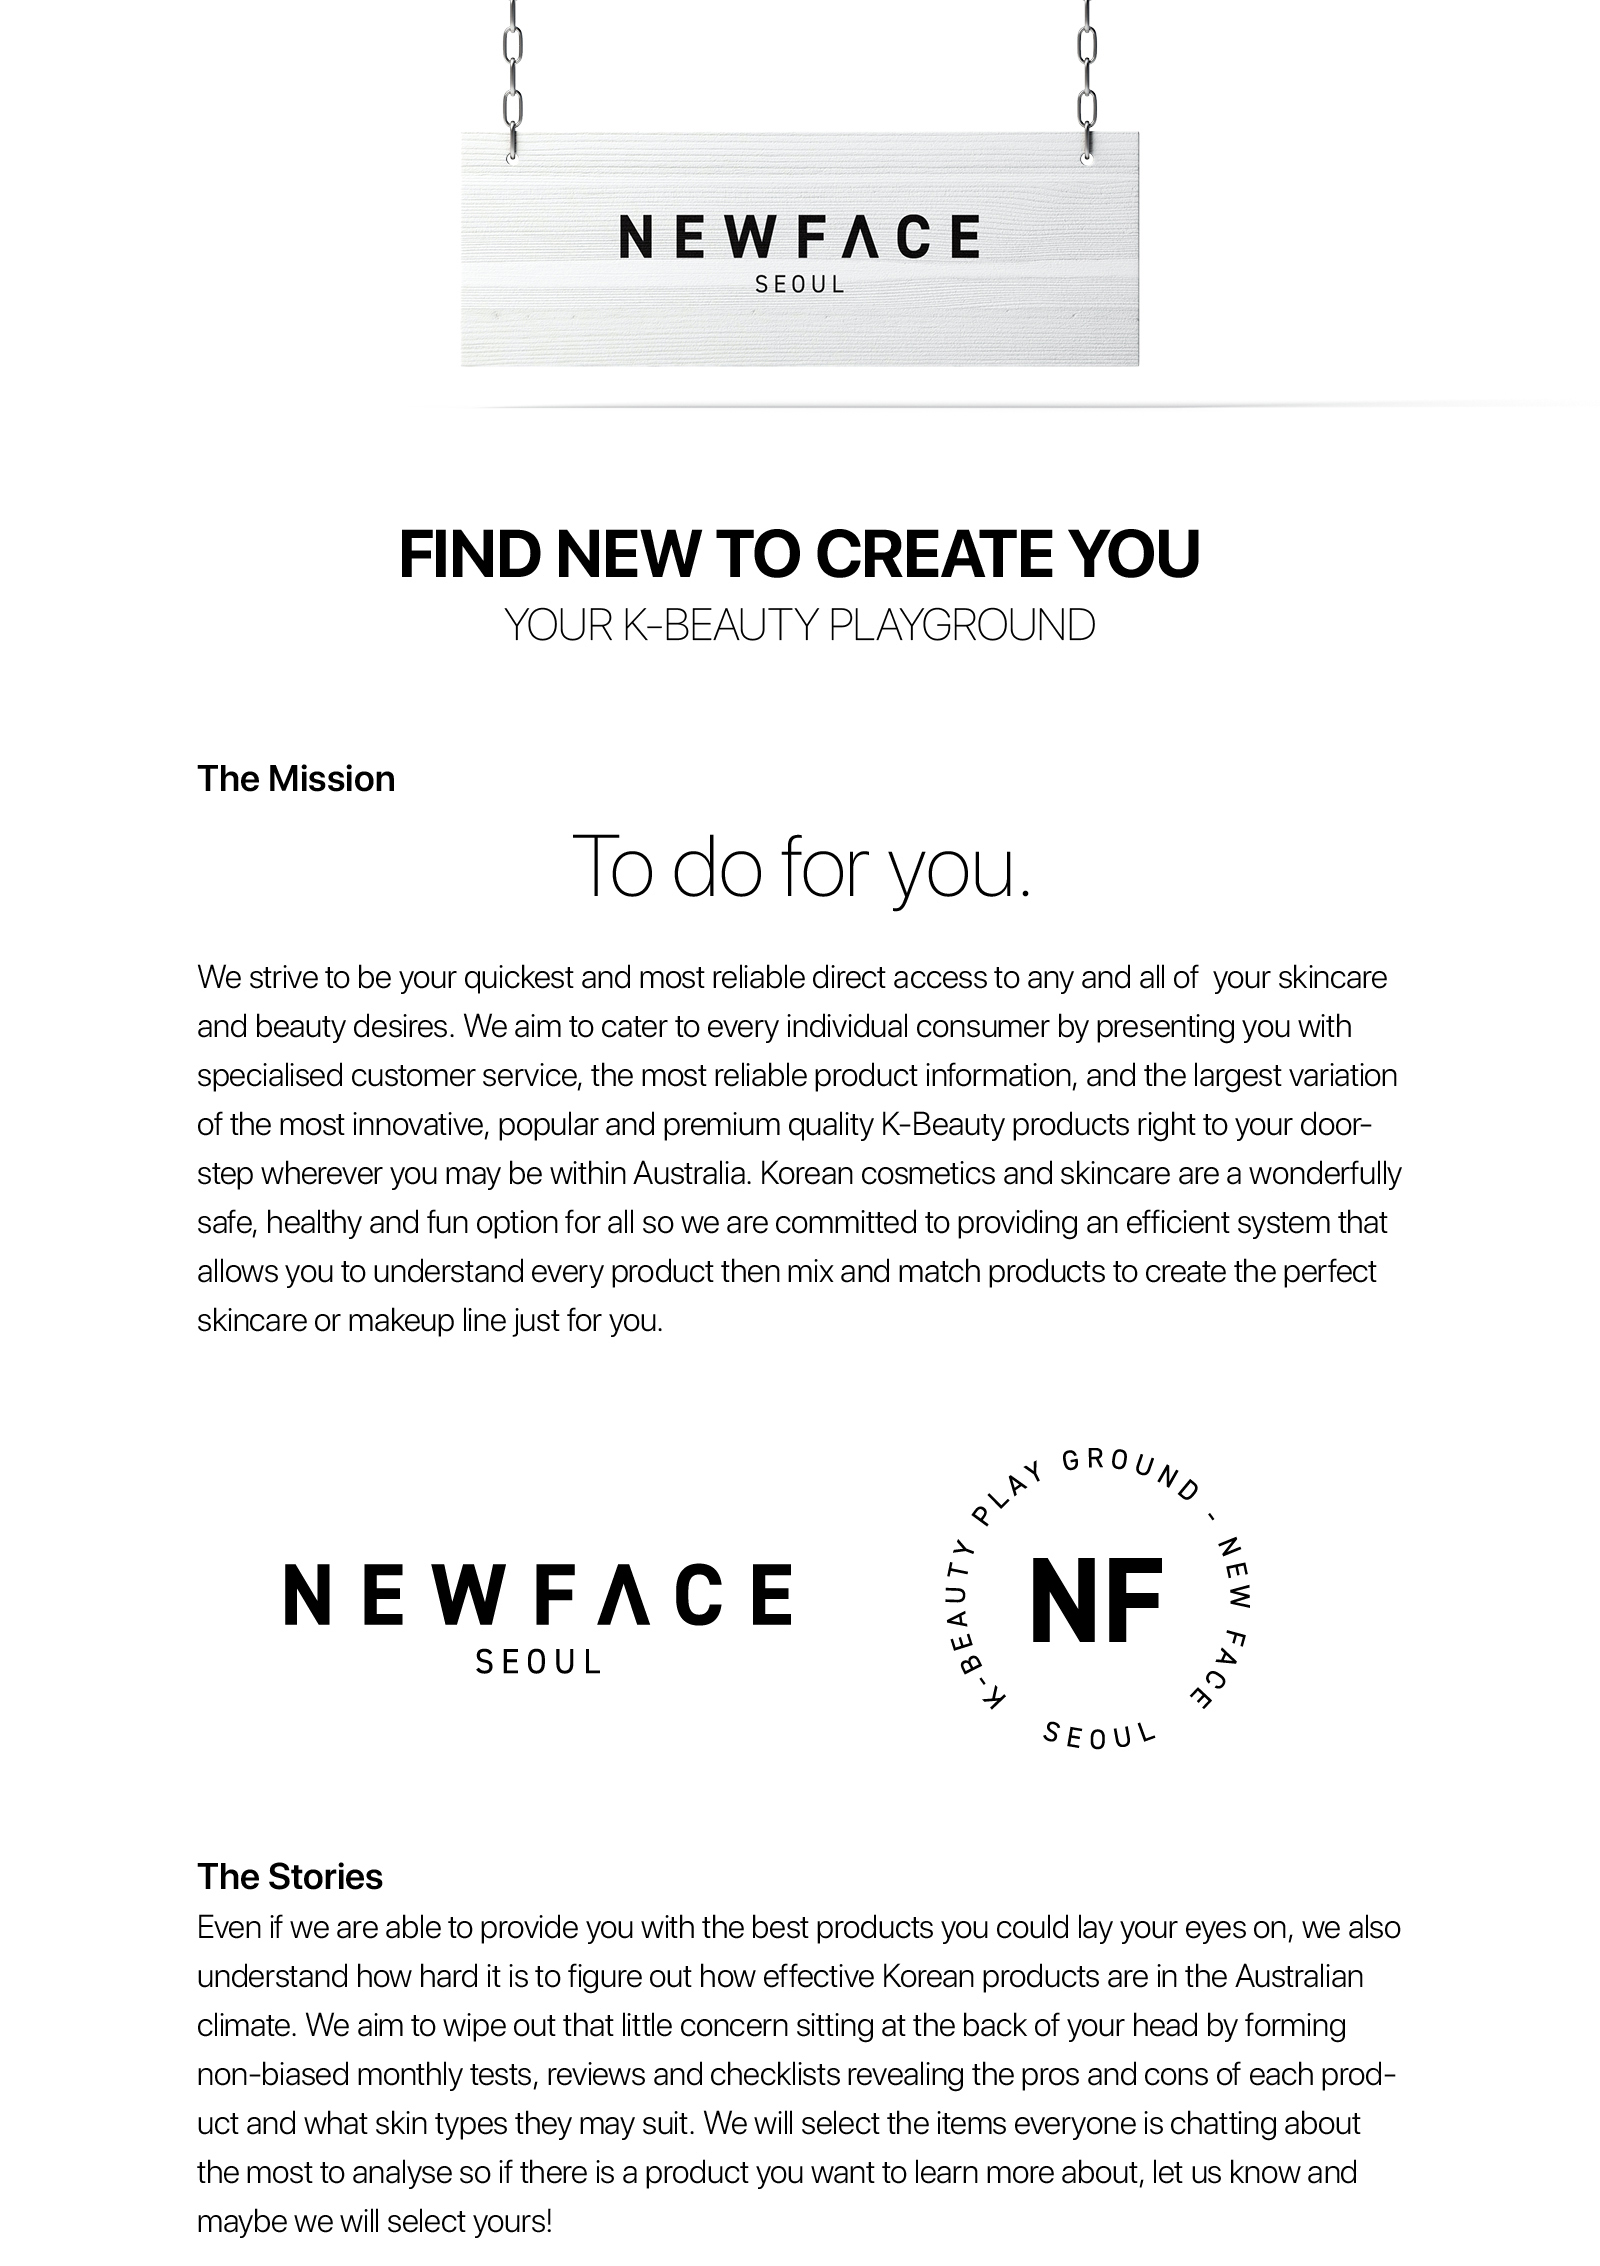 """""""Find New to Create You"""" - Your K-Beauty Playground -  The Mission  To do for you.  We strive to be your quickest and most reliable direct access to any and all of  your skincare and beauty desires. We aim to cater to every individual consumer by presenting you with specialised customer service, the most reliable product information, and the largest variation of the most innovative, popular and premium quality K-Beauty products right to your doorstep wherever you may be within Australia. Korean cosmetics and skincare are a wonderfully safe, healthy and fun option for all so we are committed to providing an efficient system that allows you to understand every product then mix and match products to create the perfect skincare or makeup line just for you.  The Stories  Even if we are able to provide you with the best products you could lay your eyes on, we also understand how hard it is to figure out how effective Korean products are in the Australian climate. We aim to wipe out that little concern sitting at the back of your head by forming non-biased monthly tests, reviews and checklists revealing the pros and cons of each product and what skin types they may suit. We will select the items everyone is chatting about the most to analyse so if there is a product you want to learn more about, let us know and maybe we will select yours!   Real & Reliable We pride ourselves on making sure a dupe will never enter our warehouse, nor your package so we have taken the careful time to curate the best product list and to then create contracts with each chosen brand. This ensures that each time you receive a package from us, you can smile brightly with comfort knowing that your products are authentic and come directly from the creators untouched.   Once in a Lifetime Delivery  With our base of operations located in Brisbane QLD, all of our products and packages are carefully managed in our own warehouse by our devoted staff. We guarantee that all deliveries will be handled with """